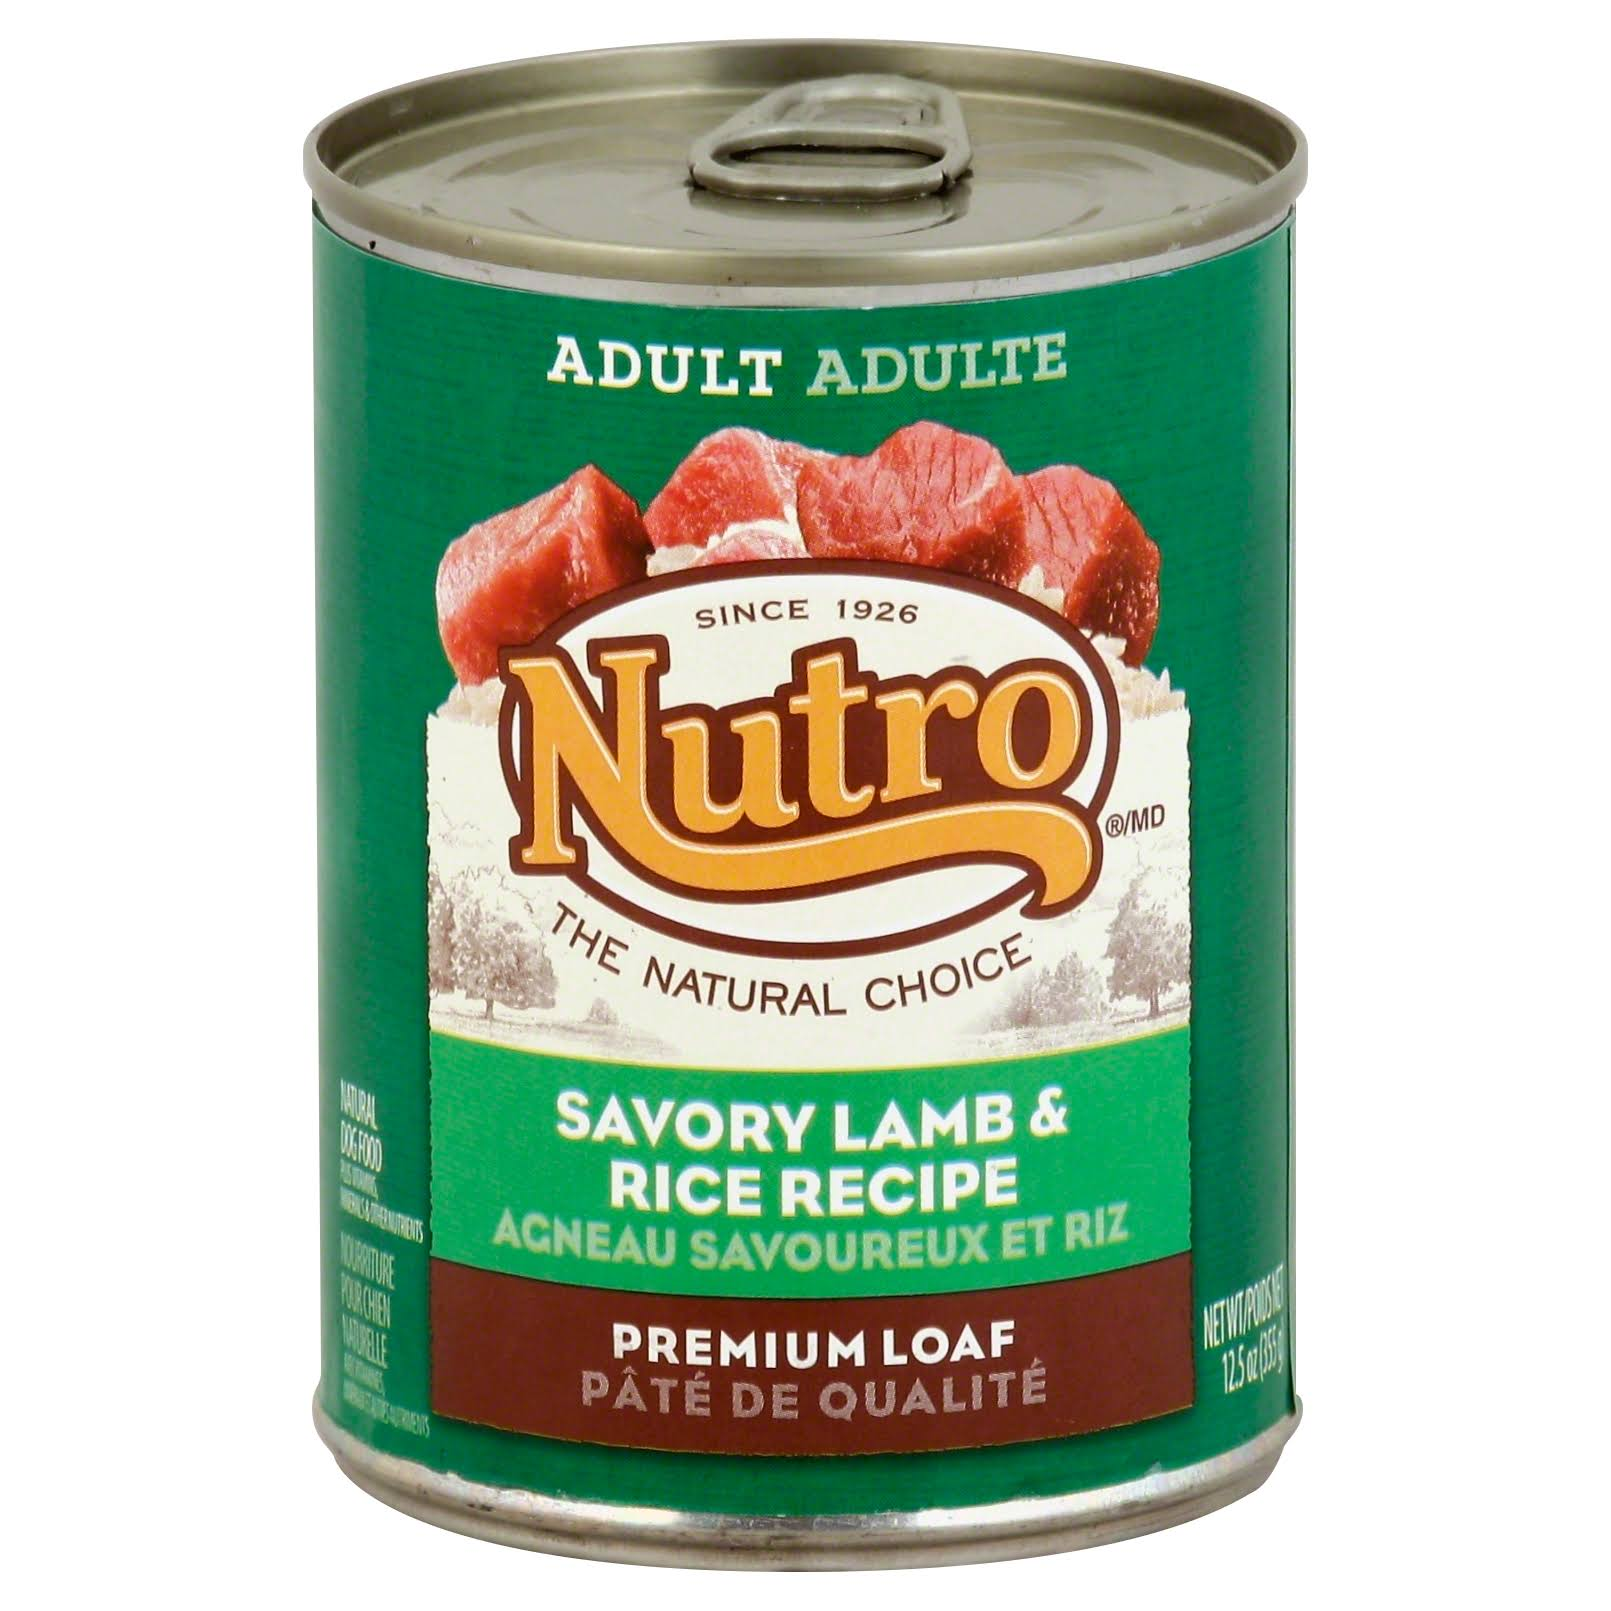 Nutro Natural Choice Dog Food - Lamb & Rice Formula, 355g